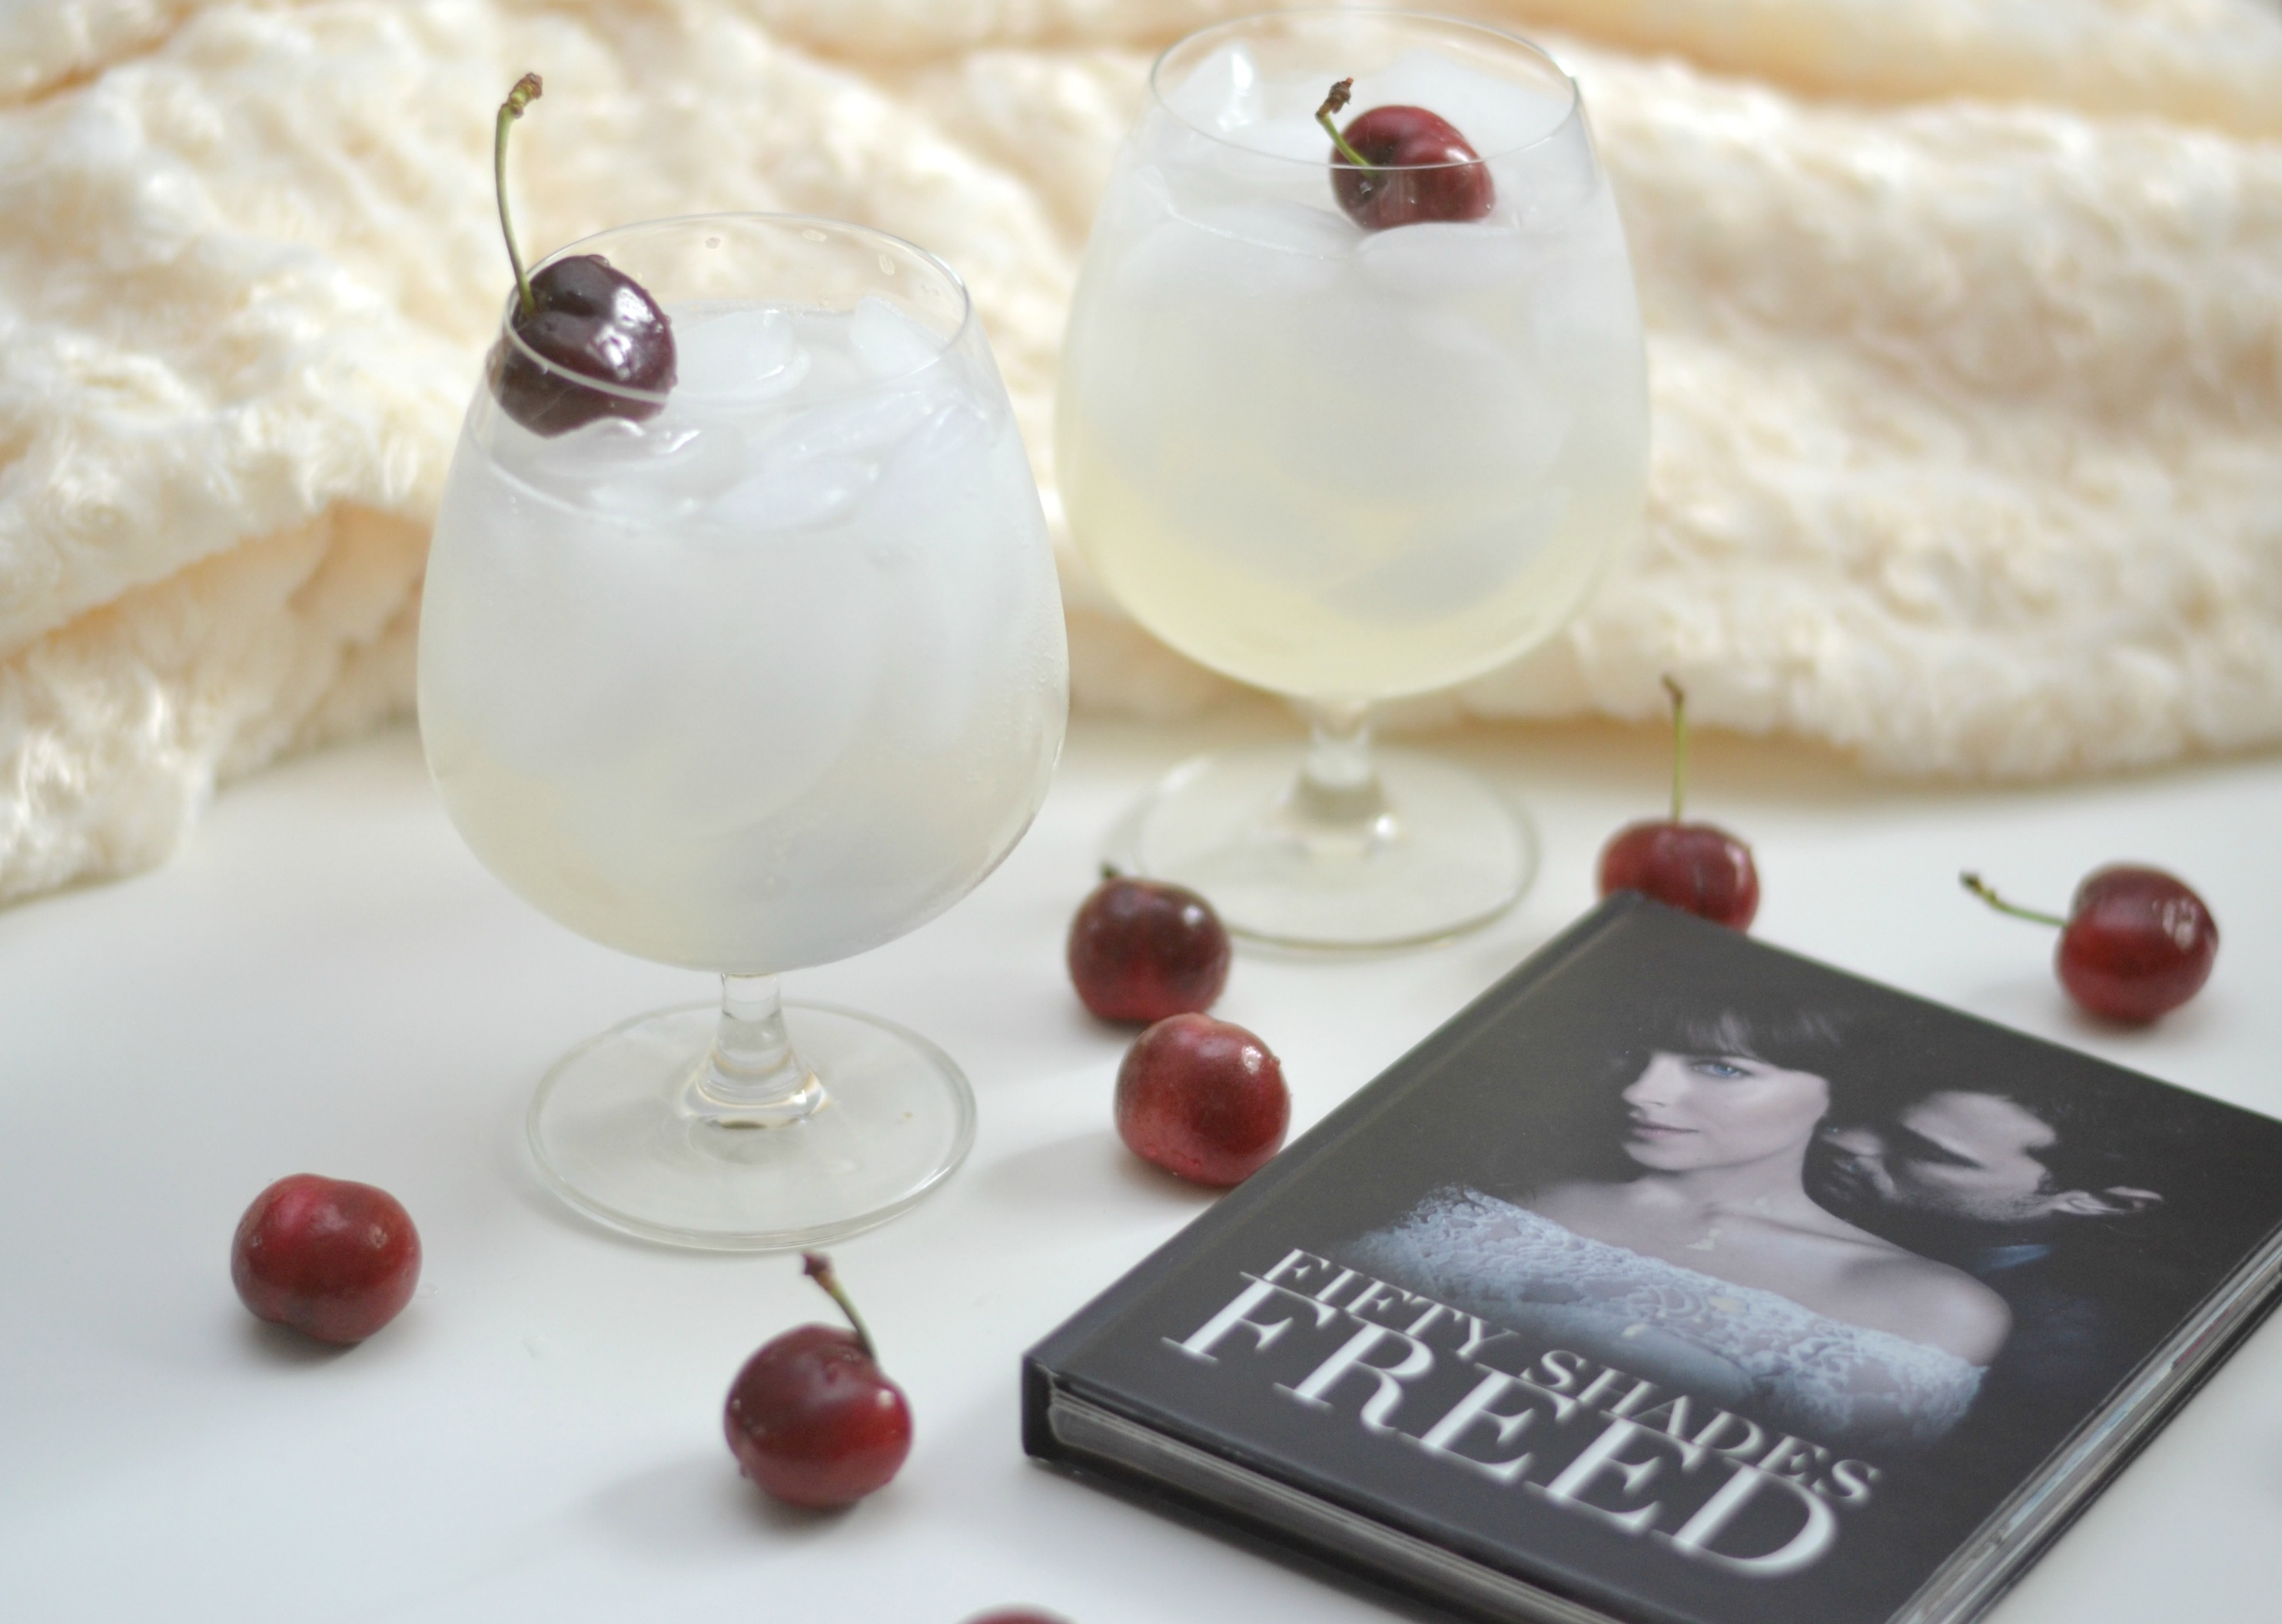 50 shades of grey, fifty shades of grey, 50 shades of grey dvd, fifty shades of grey dvd, 50 shades of grey party, fifty shades of grey party, 50 shades of grey drinks, fifty shades of grey drinks, 50 shades of grey recipes, fifty shades of grey recipes